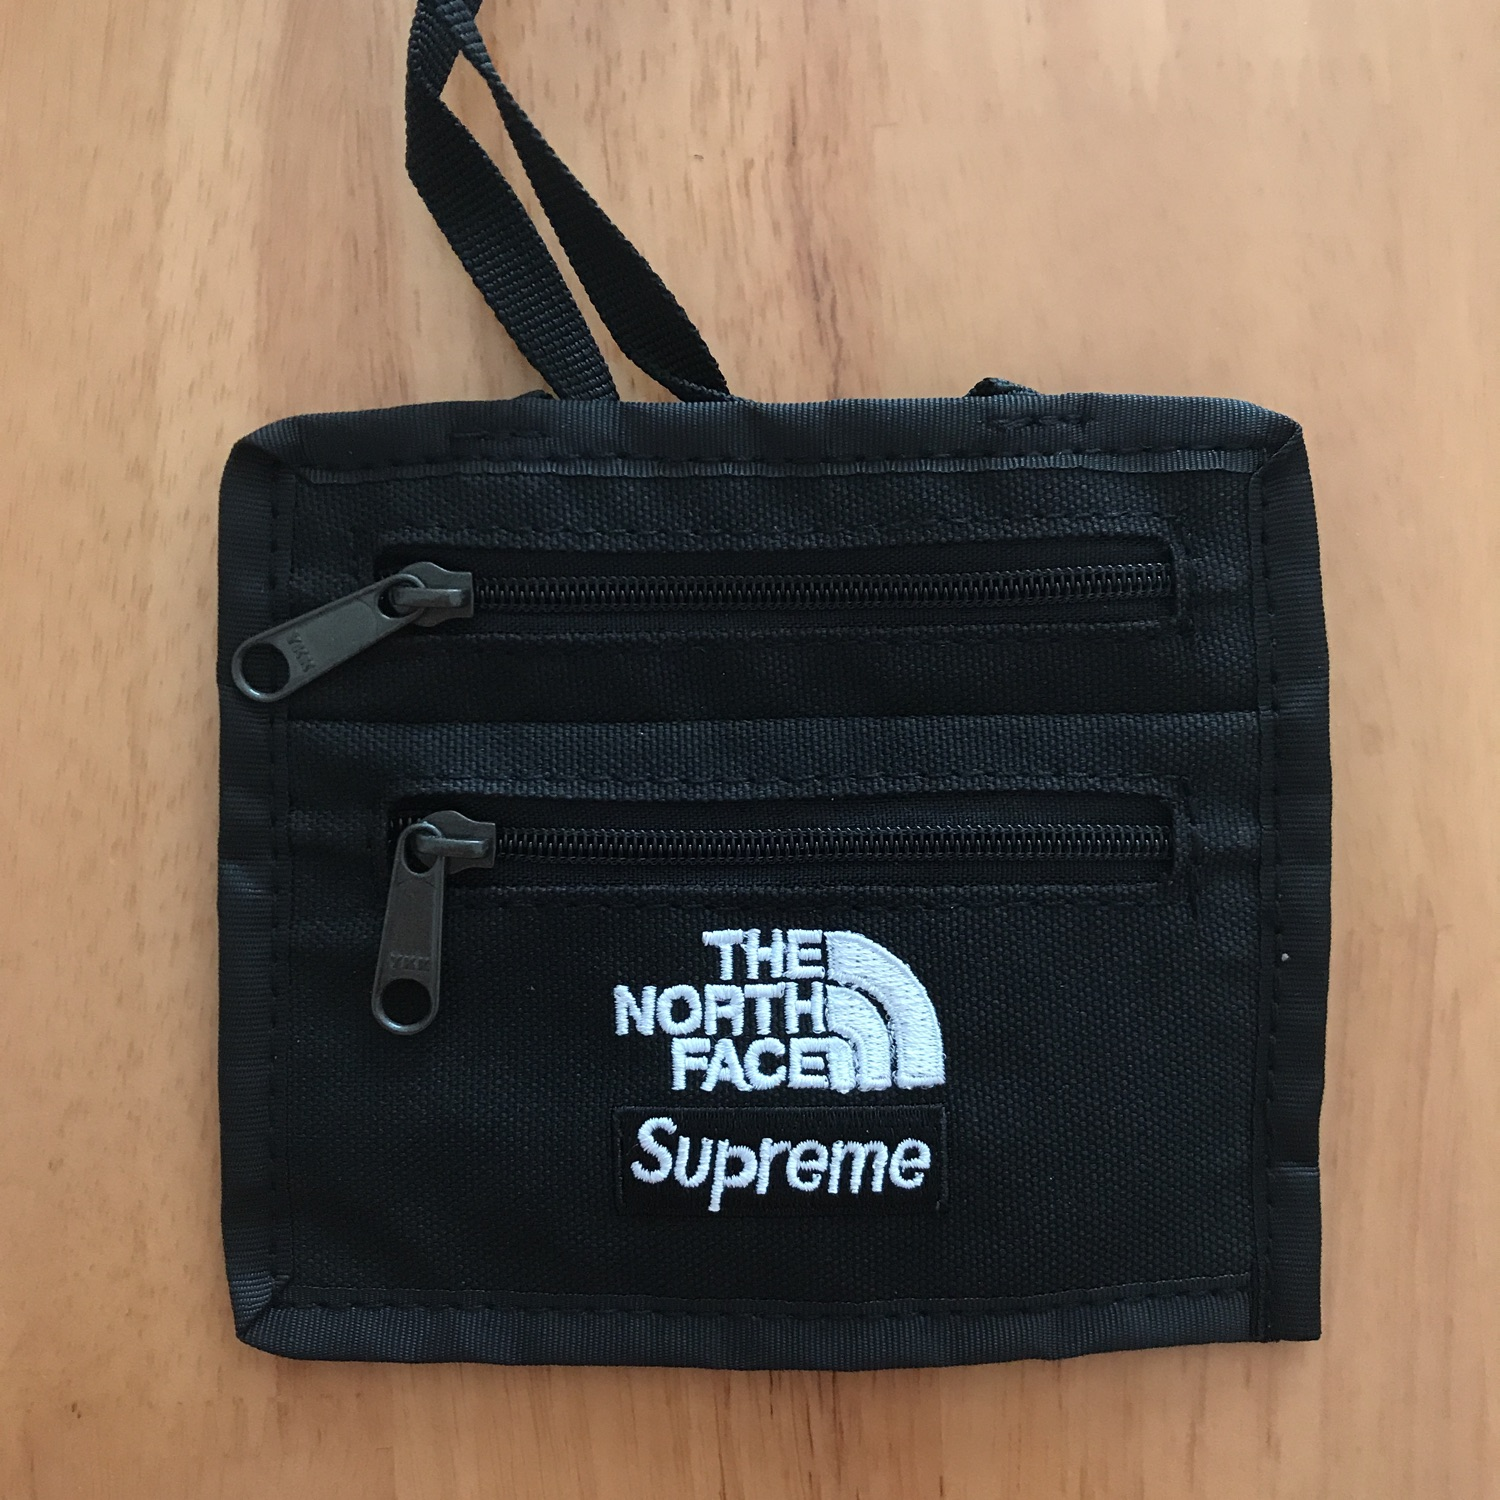 Supreme Tnf Expedition Wallet Bag